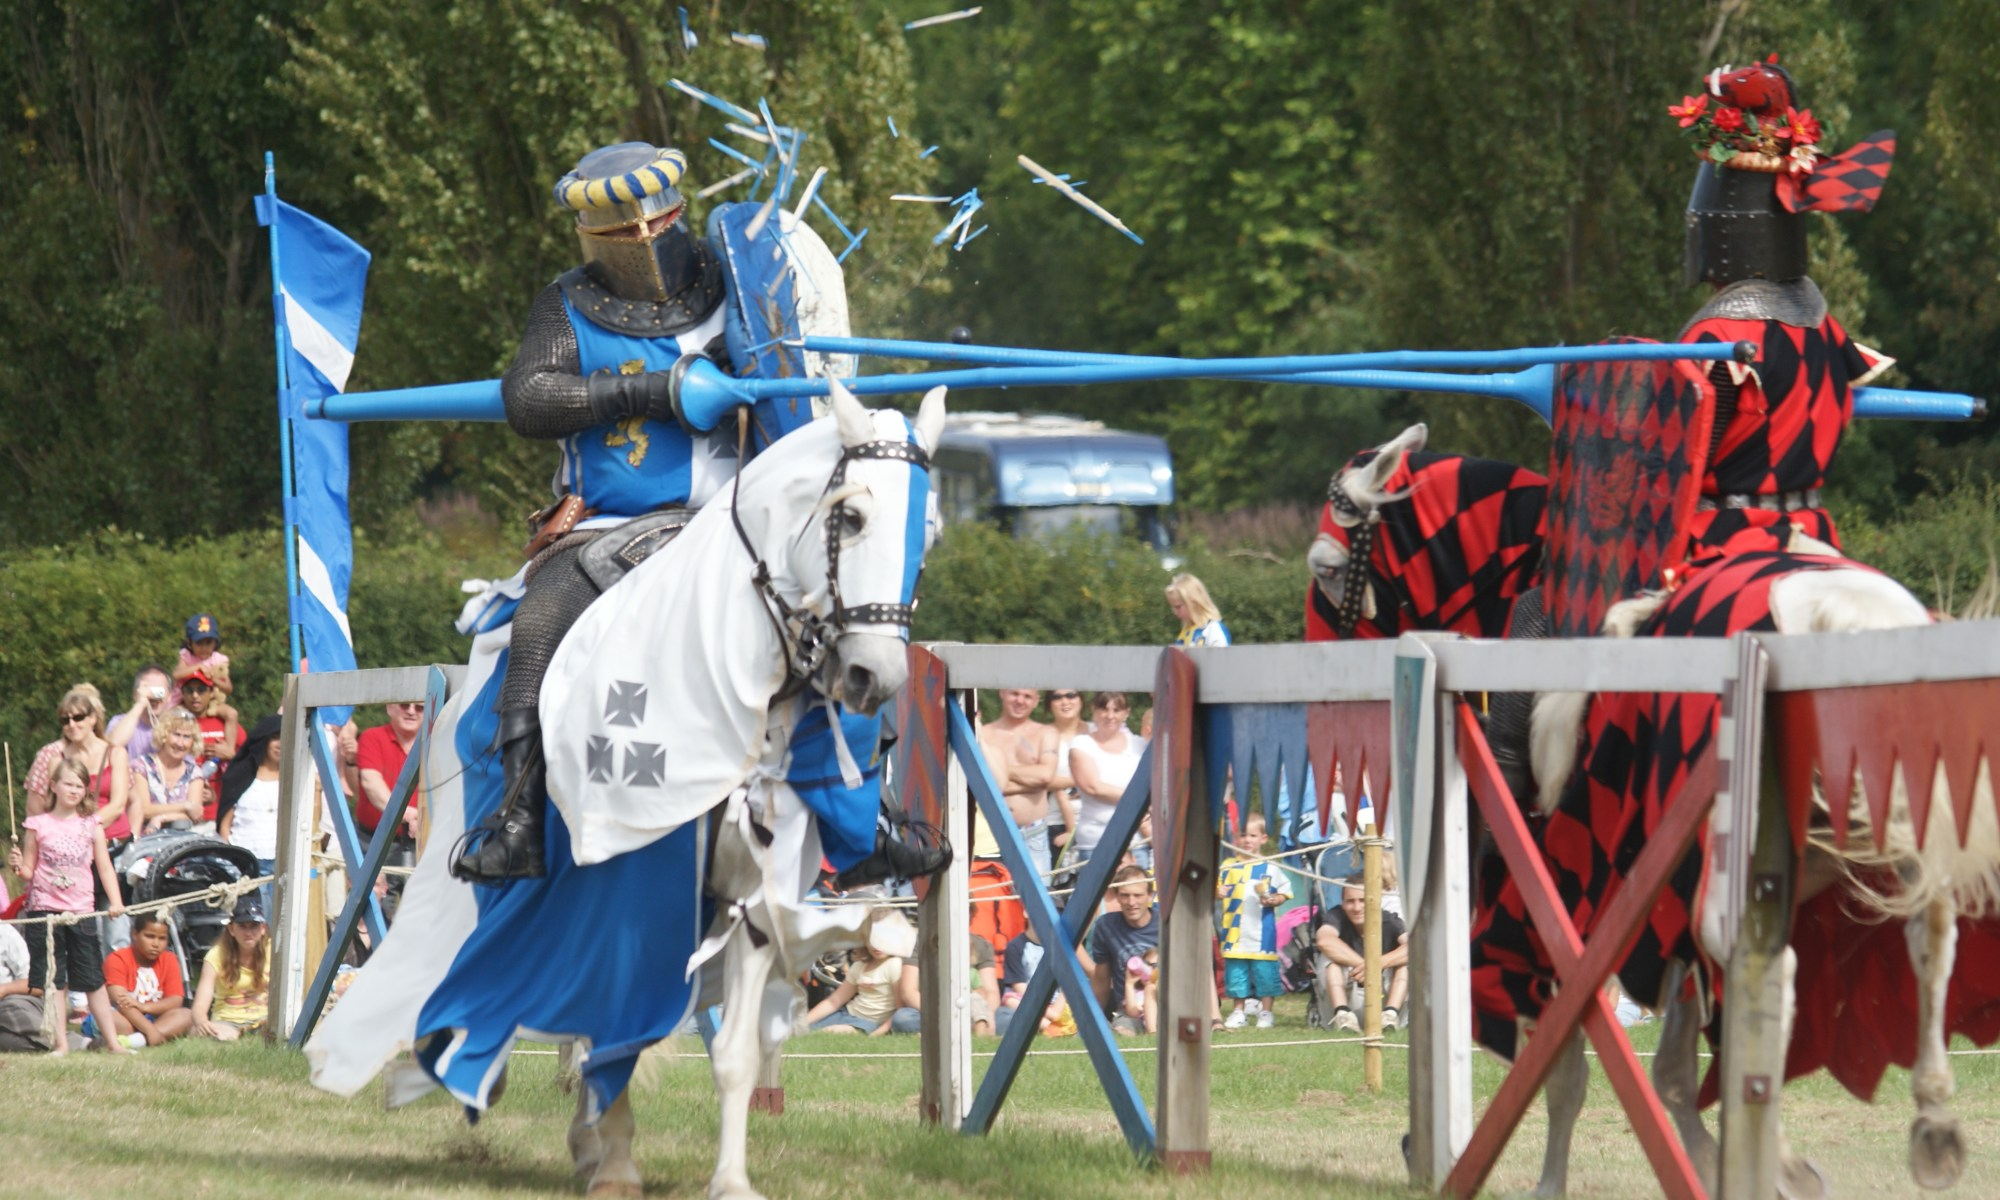 Jousting replaced the Melee as the main event towards the middle of the 13th century